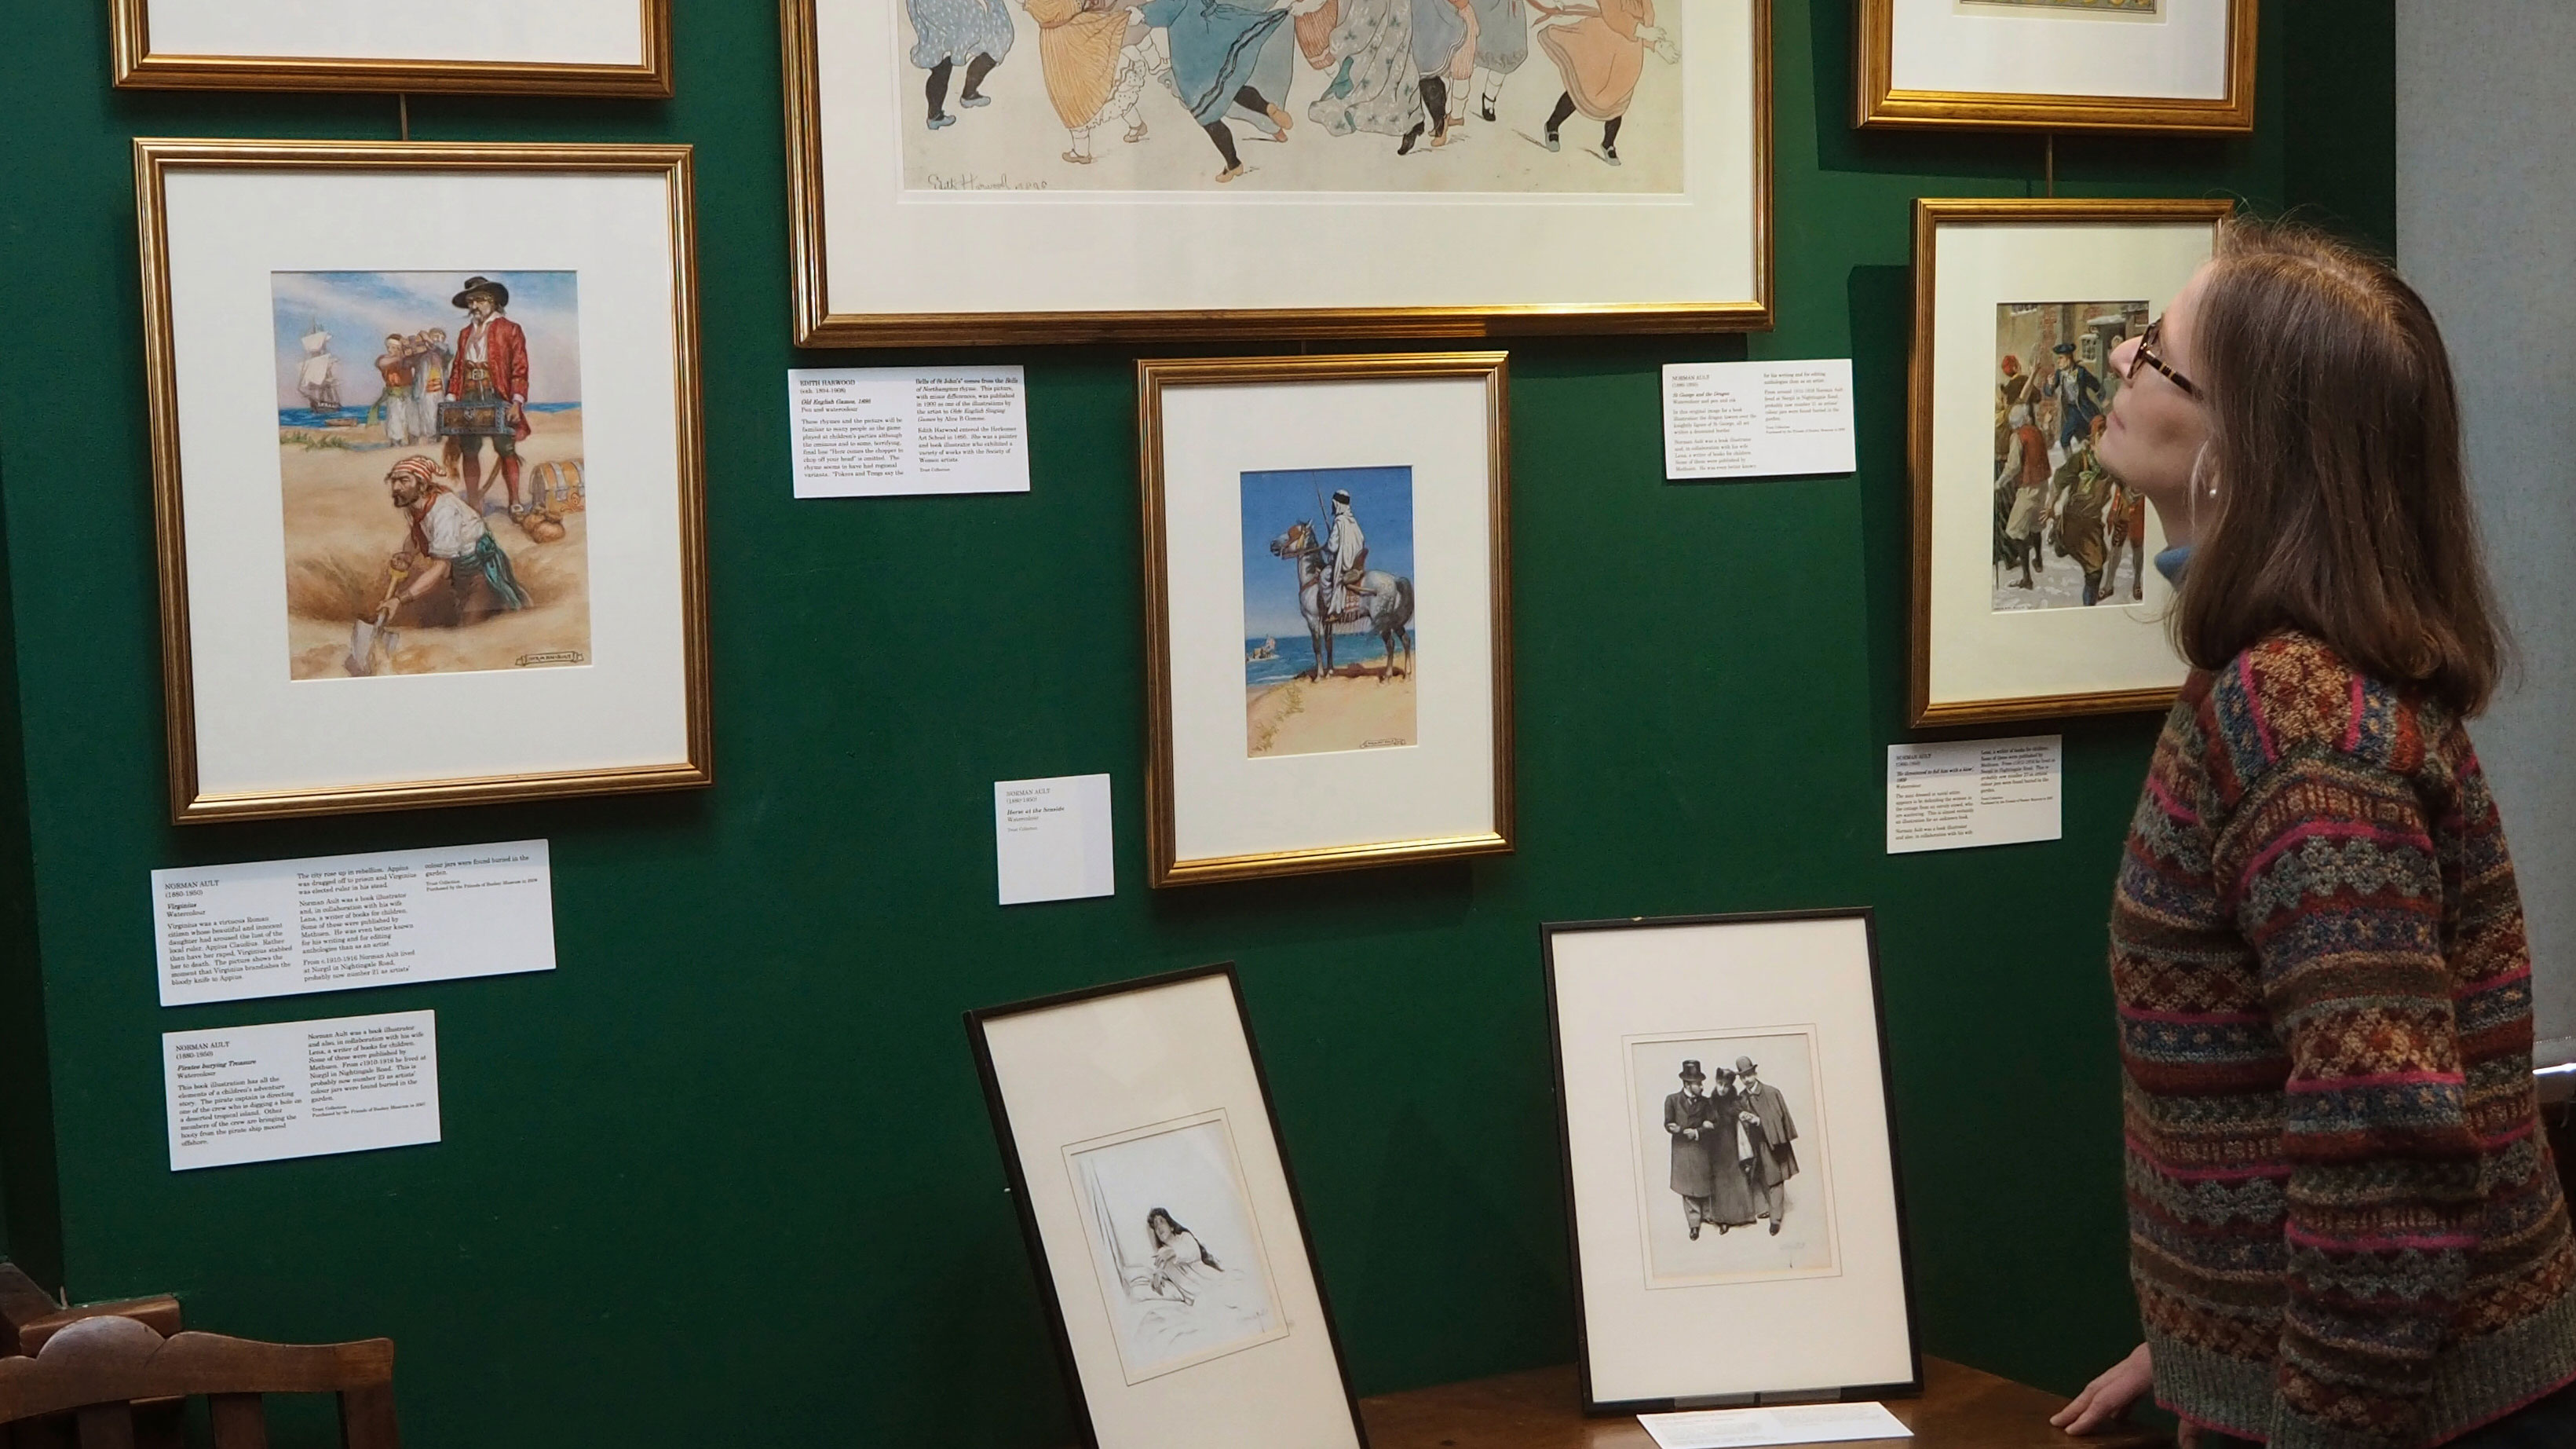 Book Illustration Exhibition at Bushey Museum and Art Gallery